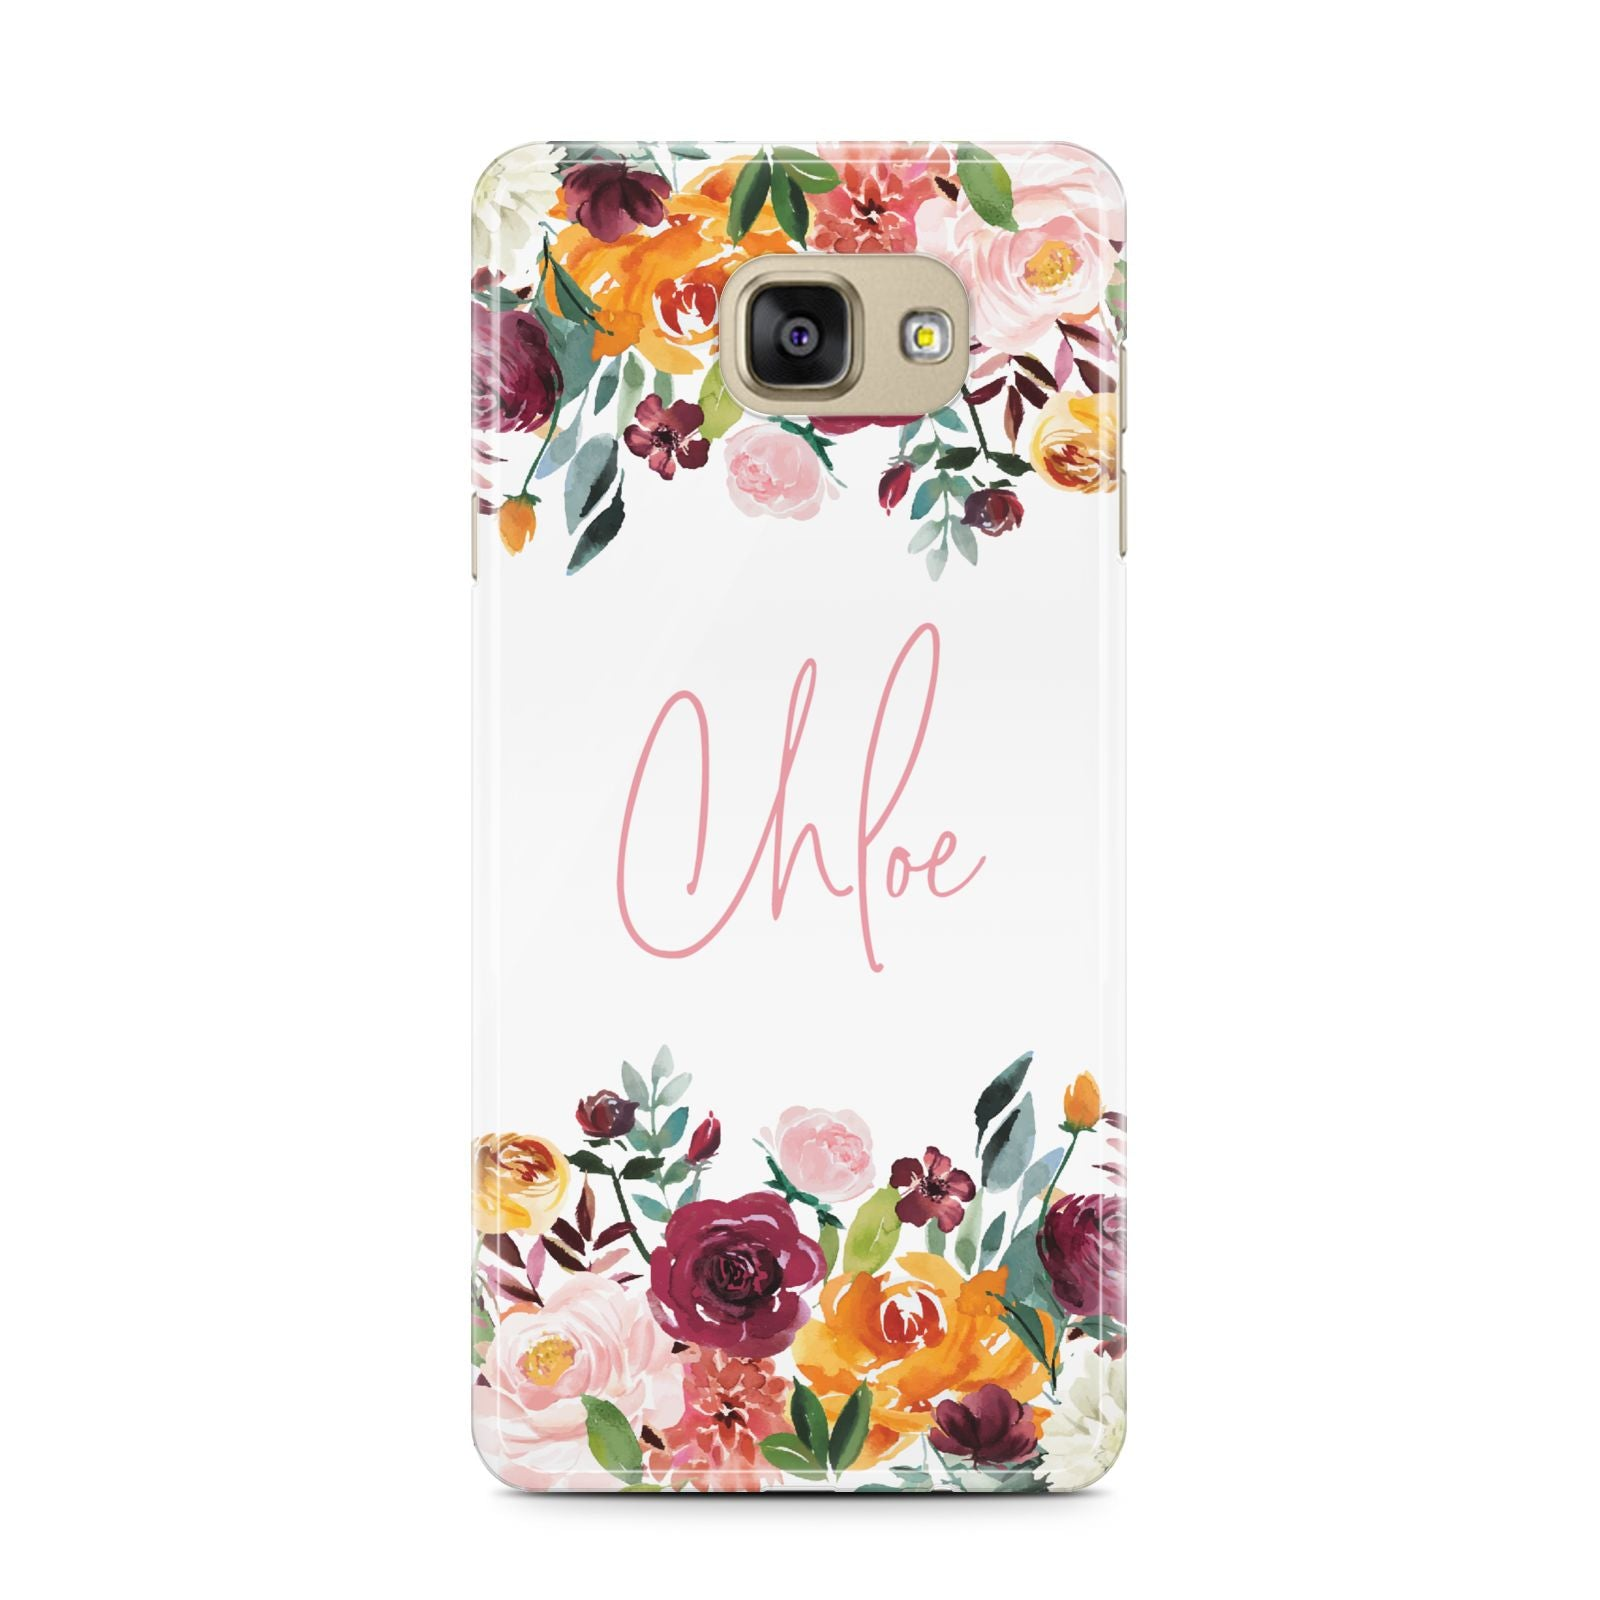 Personalised Name Transparent Flowers Samsung Galaxy A7 2016 Case on gold phone